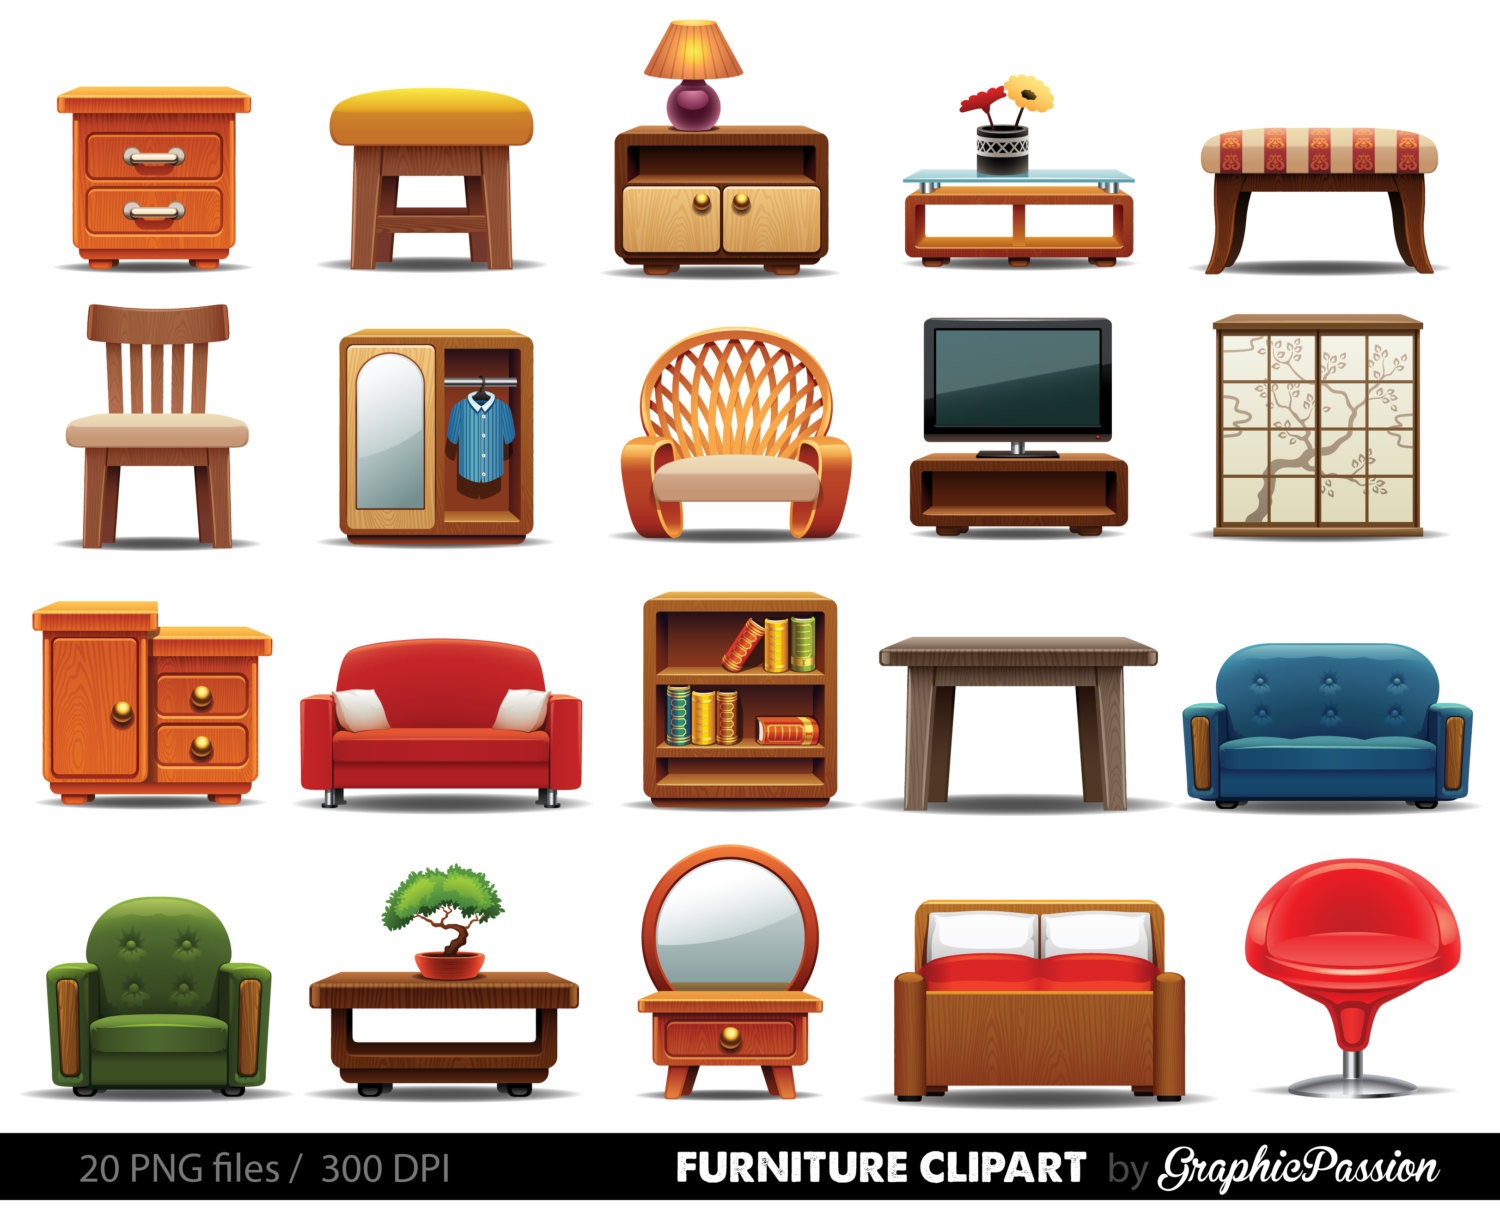 hight resolution of furniture clipart to scale